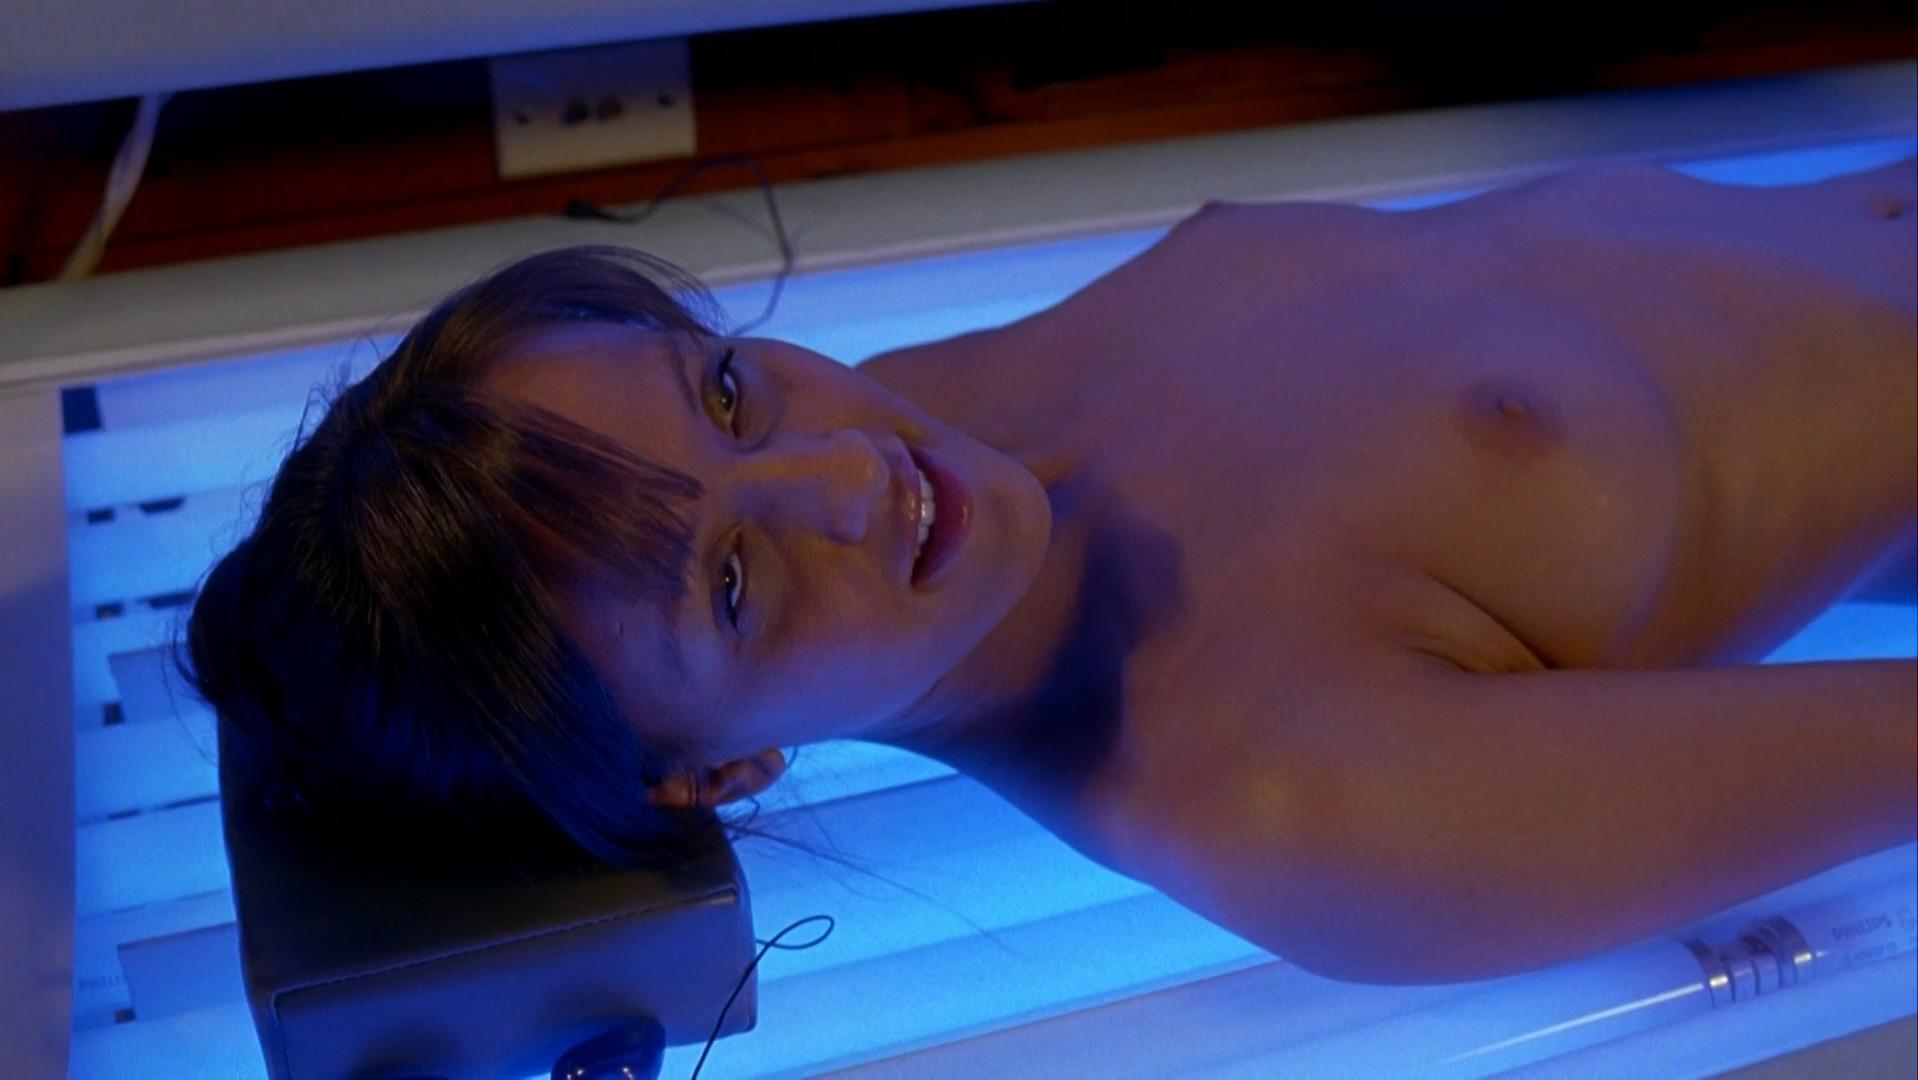 Naked pics of crystal lowe